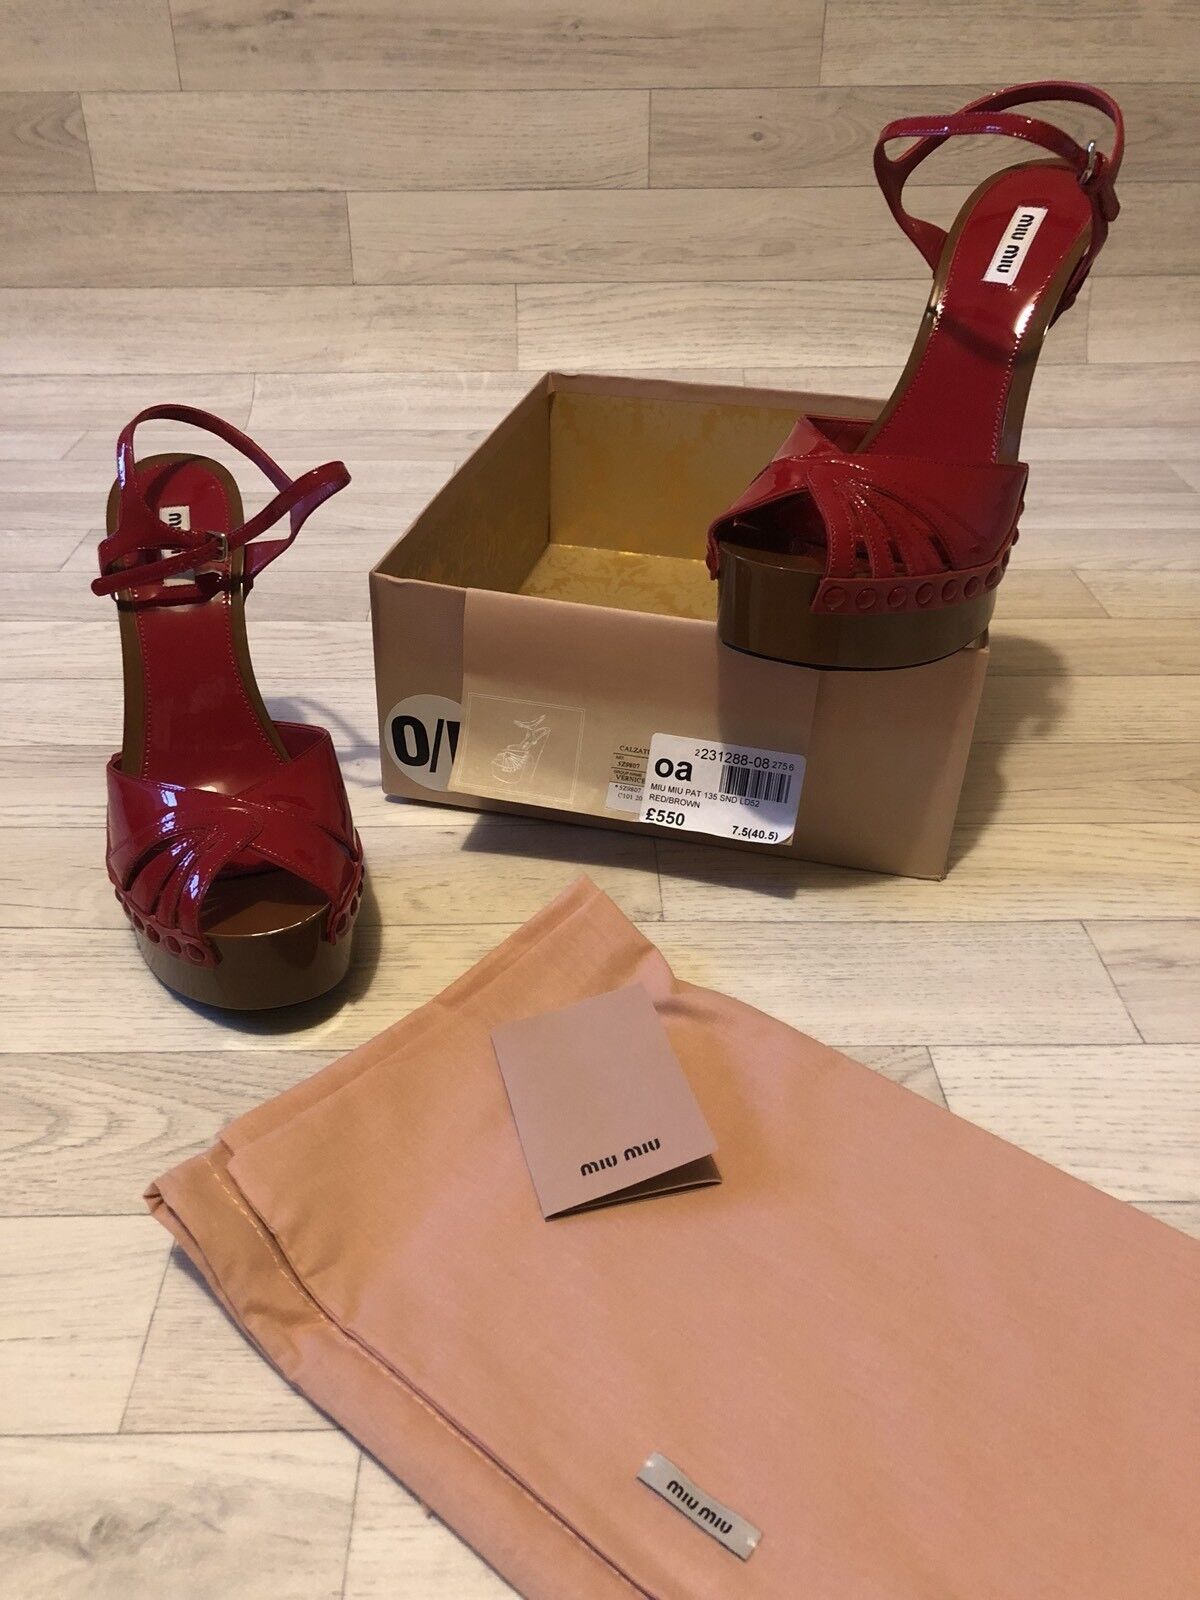 Miu Miu (Prada) shoes High Heel Patent Leather Red Brown Sandals UK7.5 EU40.5